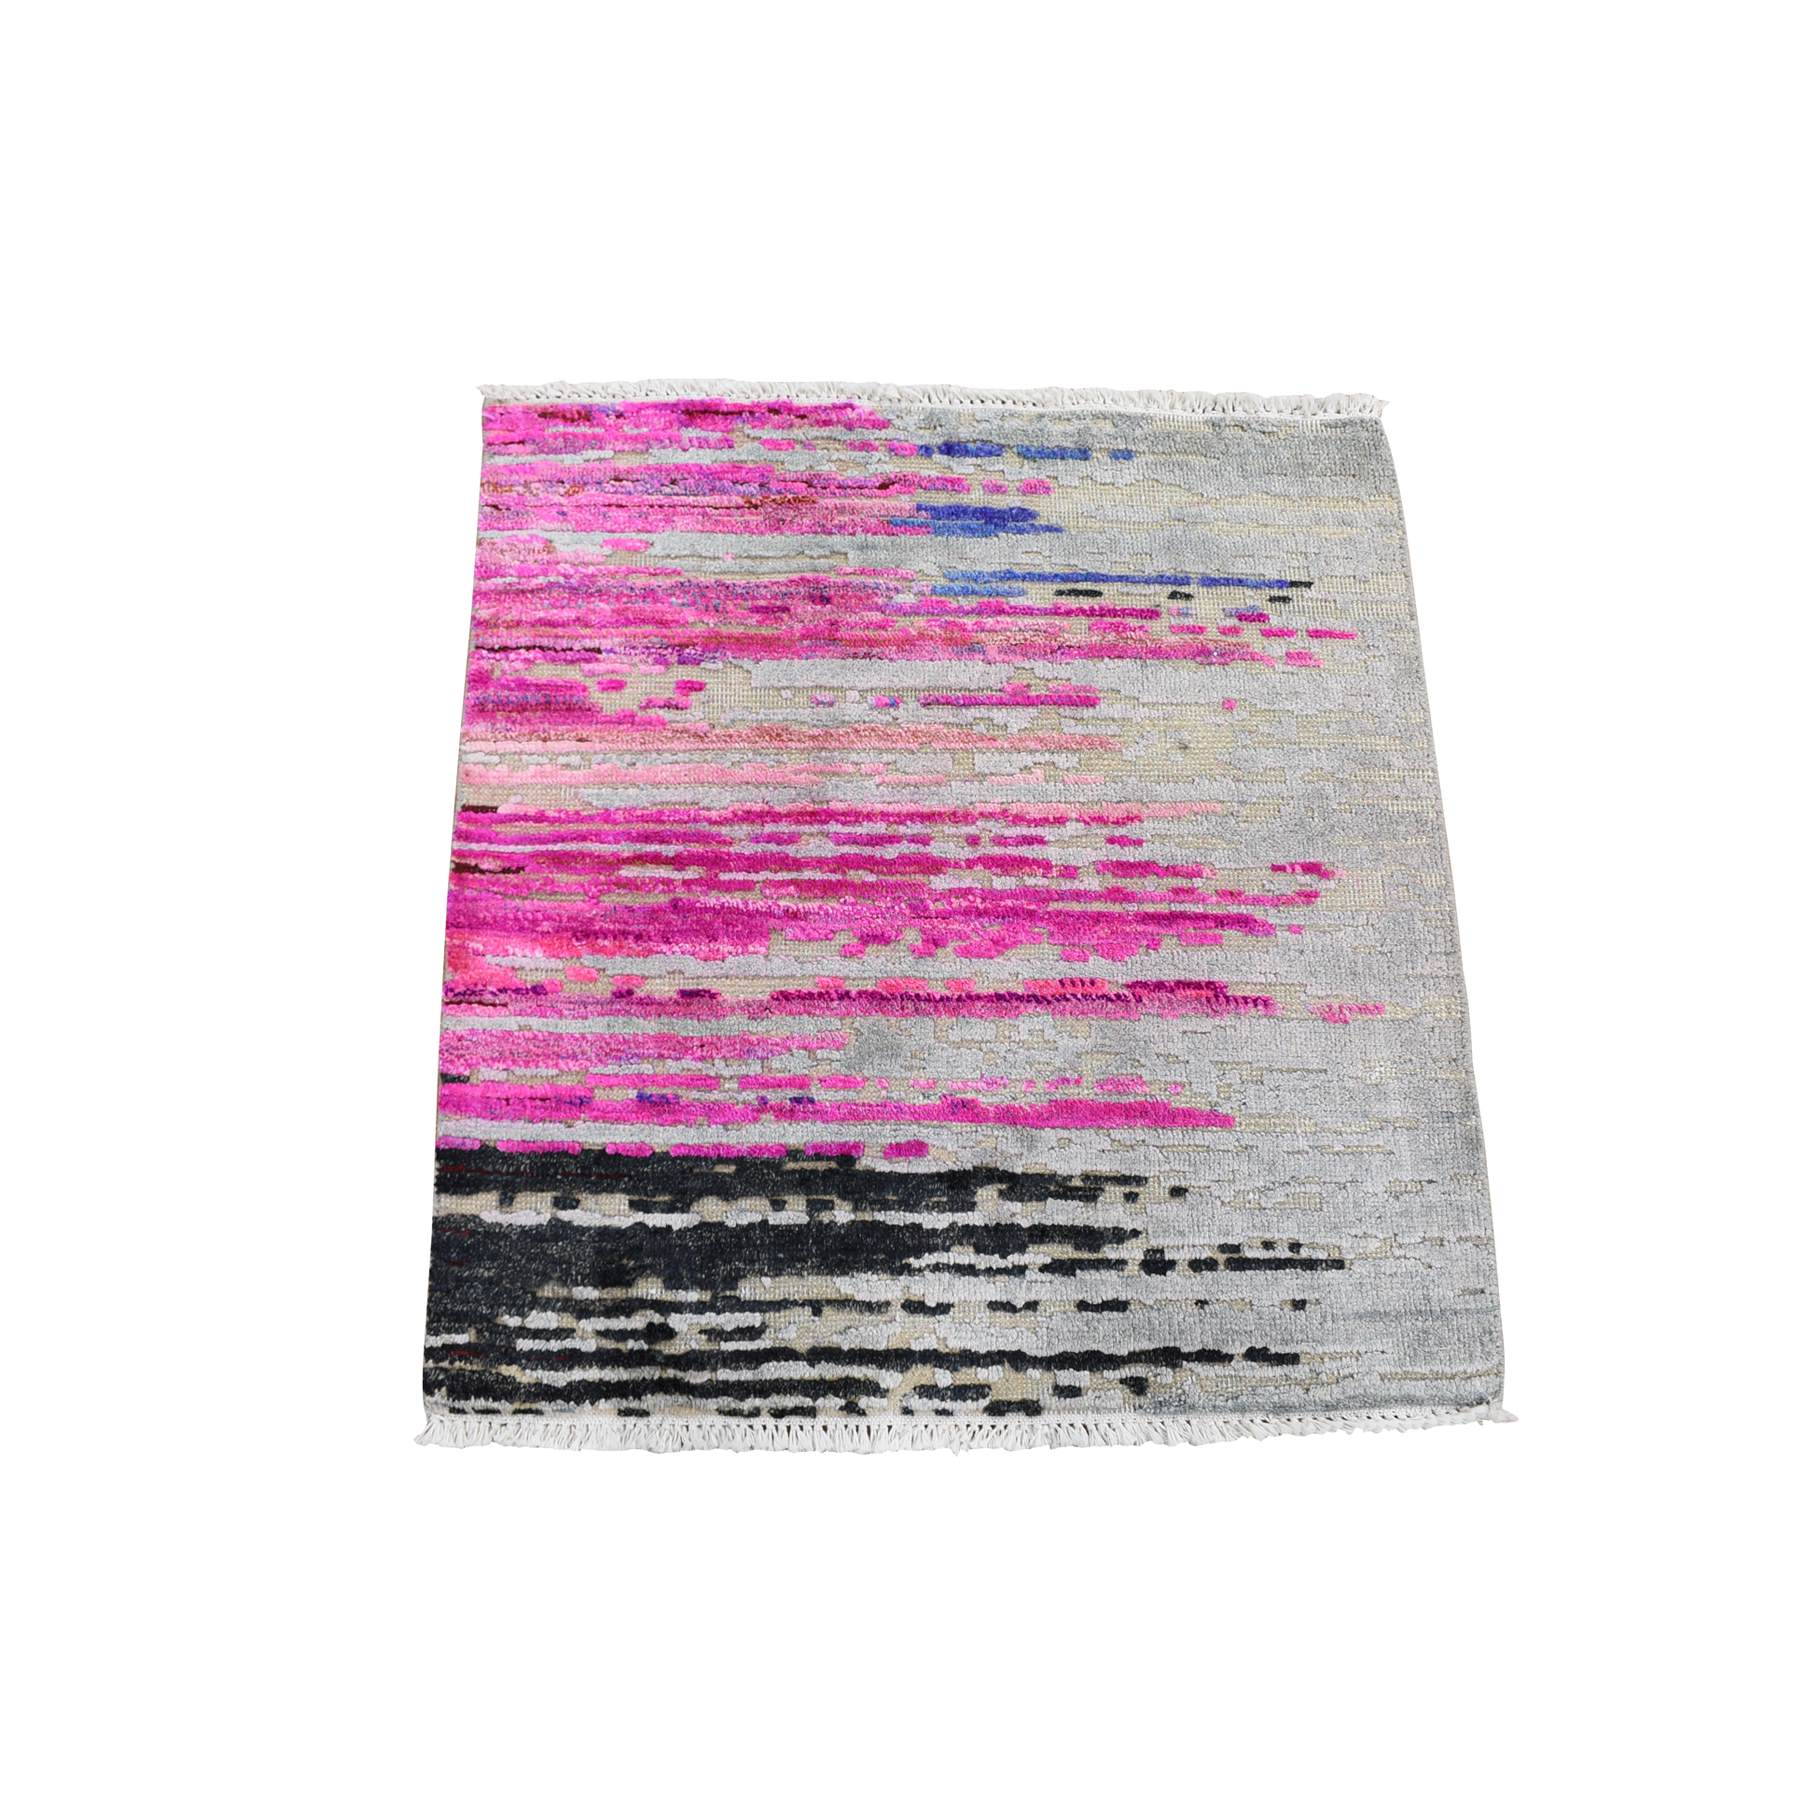 2'x2' Erased Horizontal Line Design ,Pink Sari Silk With Textured Wool Oriental Rug